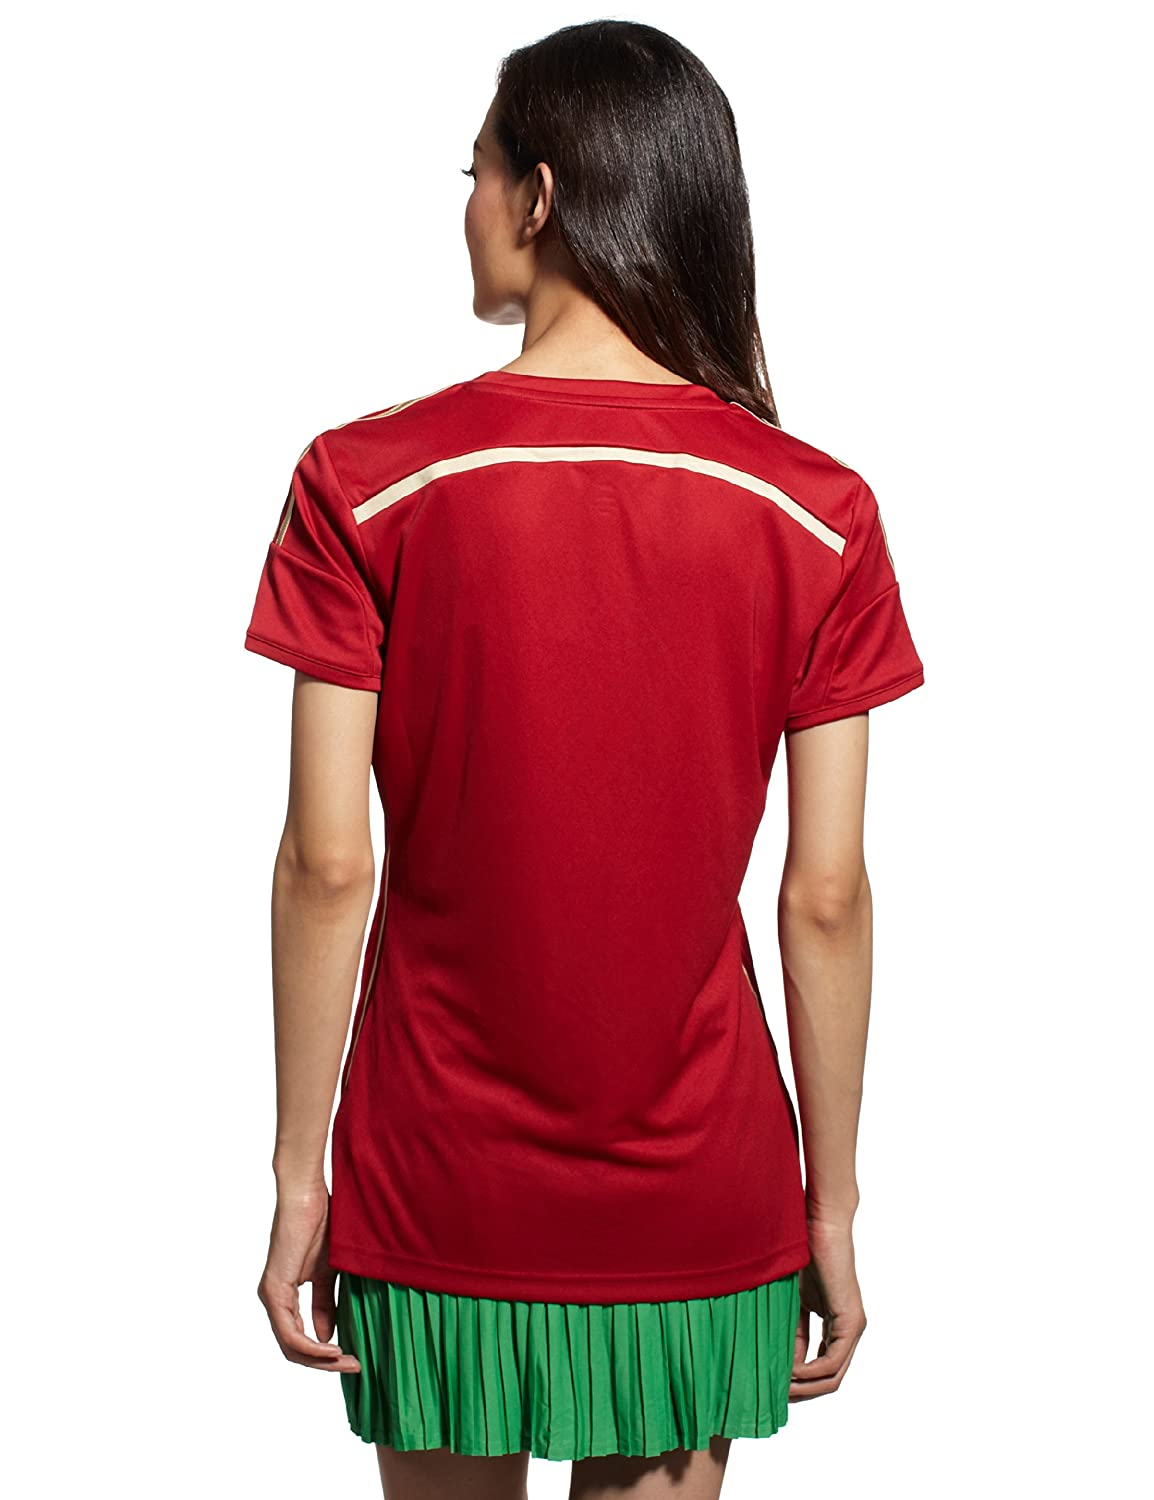 0617c5a05 adidas Womens Spain National Football Top T Shirt World Champion Edition:  Amazon.co.uk: Clothing